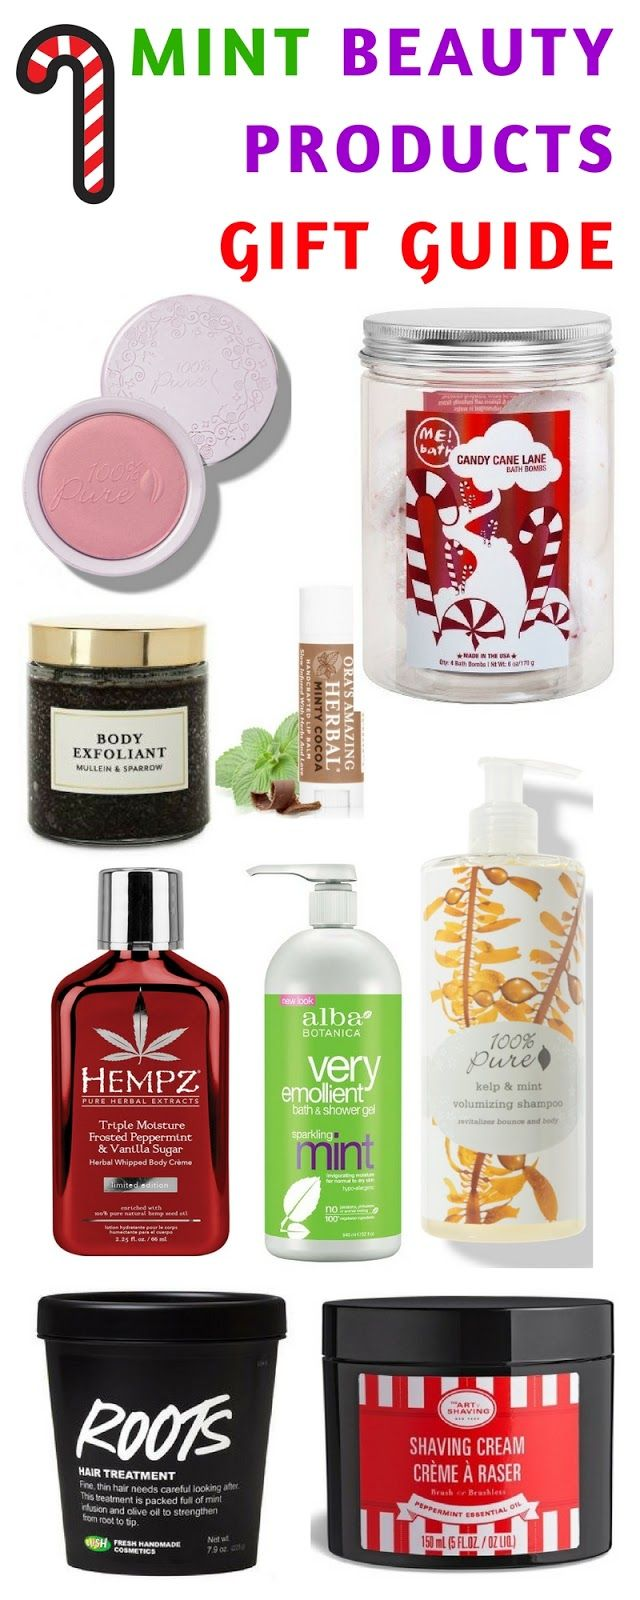 Chain perfume and cosmetics shops Letual: reviews, products, promotions and discounts 44